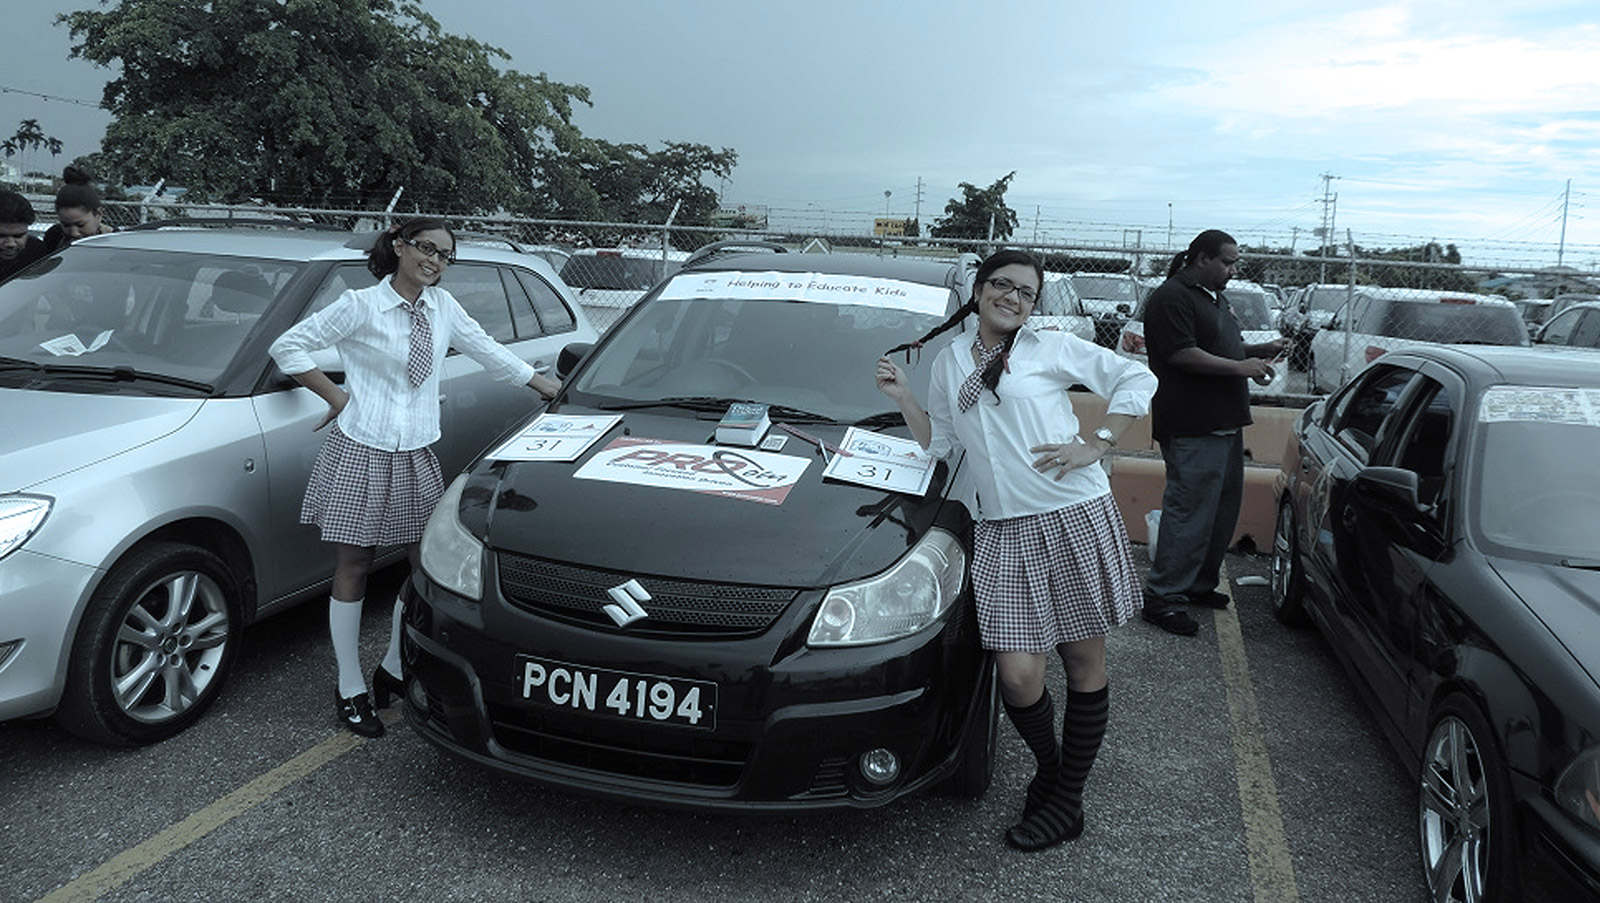 2013: Express Childrens' Fund Car Rally